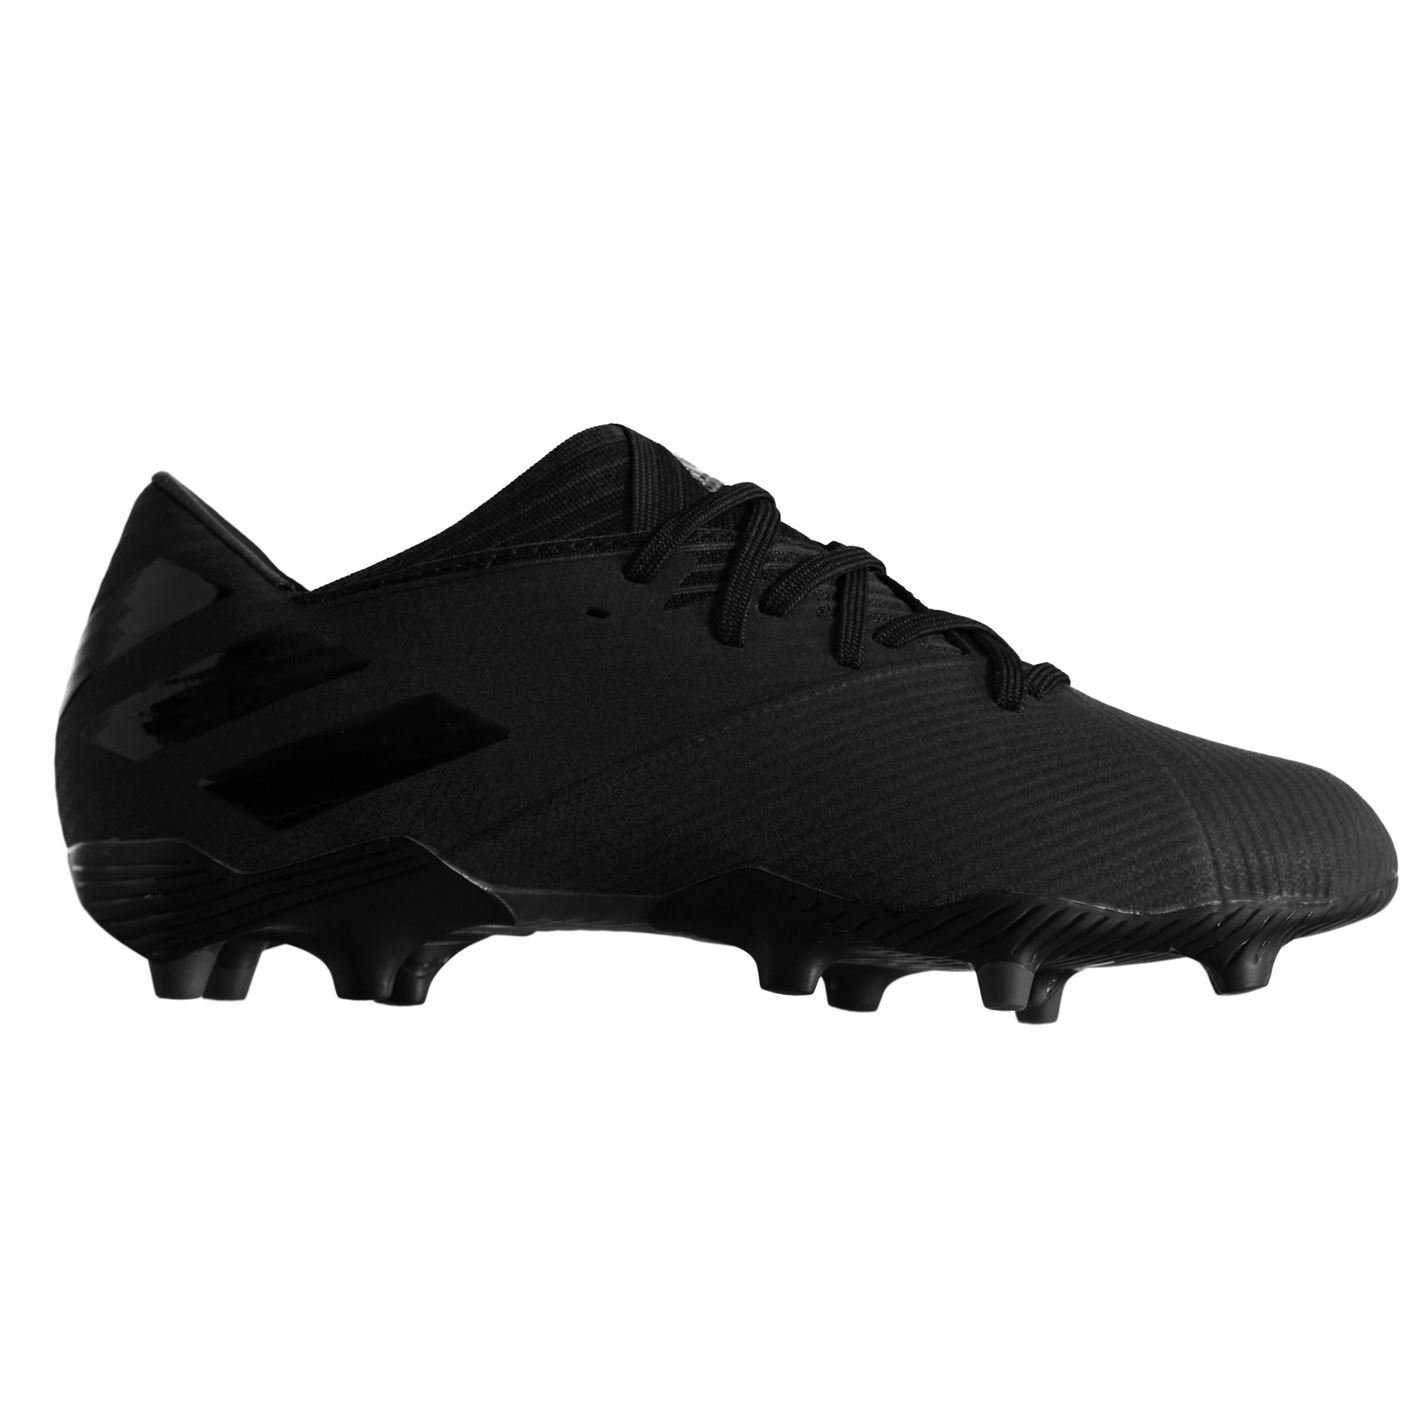 2 2 2 Negozio Adidas Scarpe Scarpe Scarpe Scarpe Calcio Firm